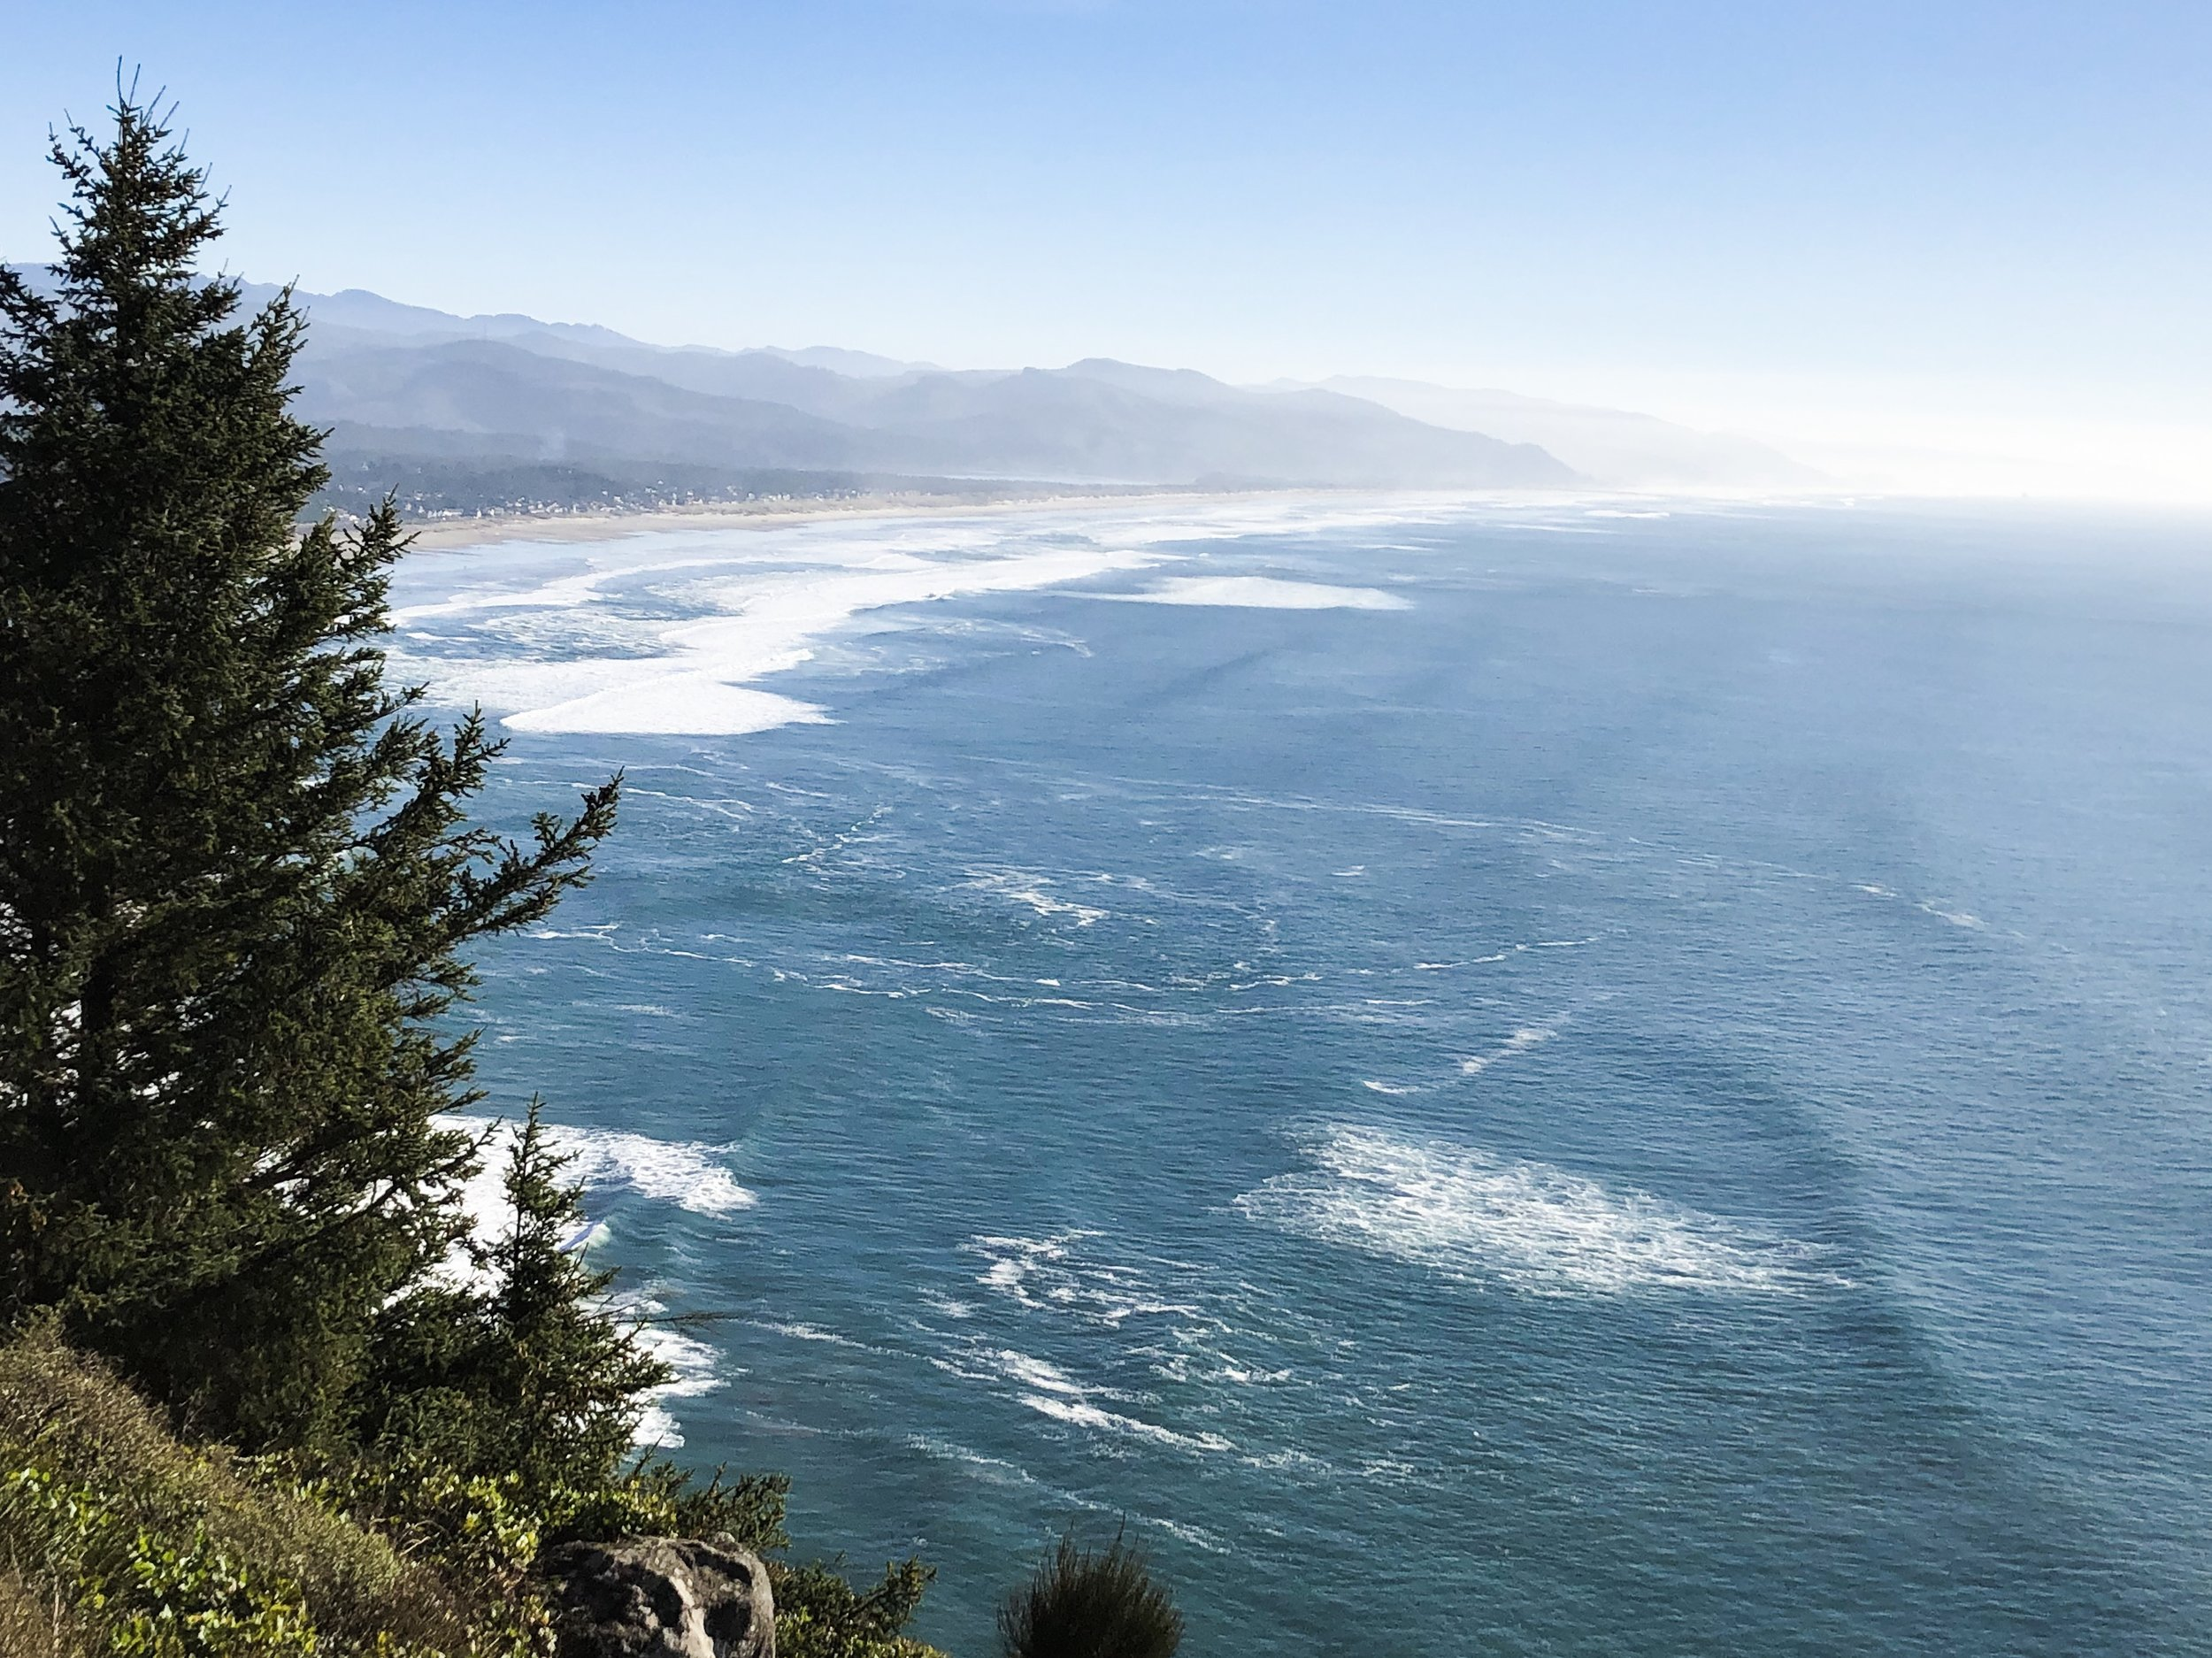 This is a surprisingly common sort of view. From Cape Falcon looking south over Neahkahnie and Nedonna beaches and Cape Meares in the distance